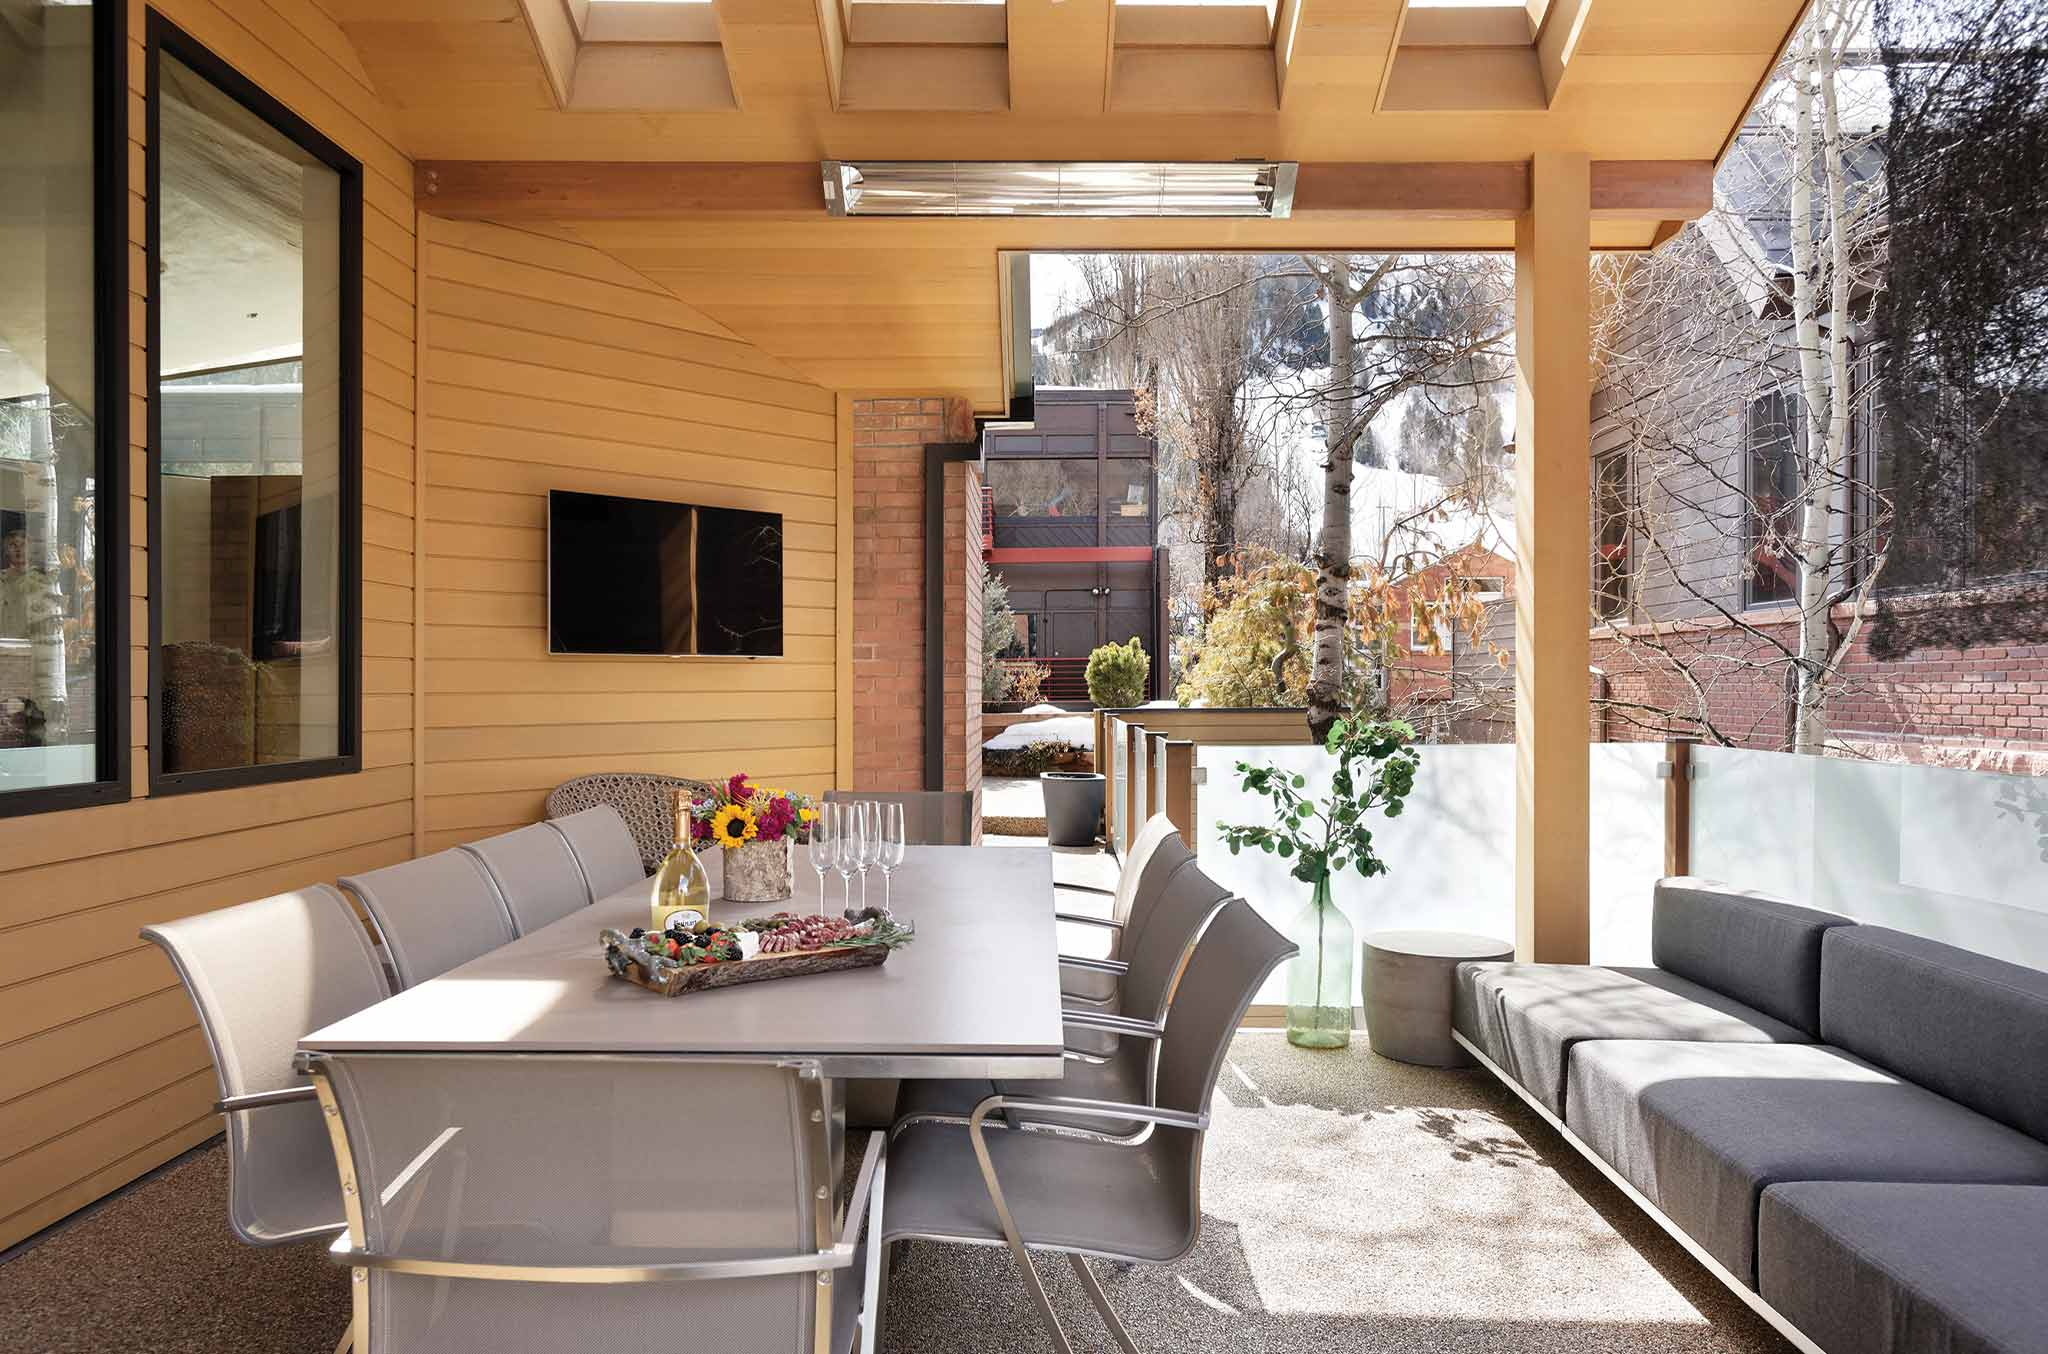 outdoor terrace perfect for entertaining